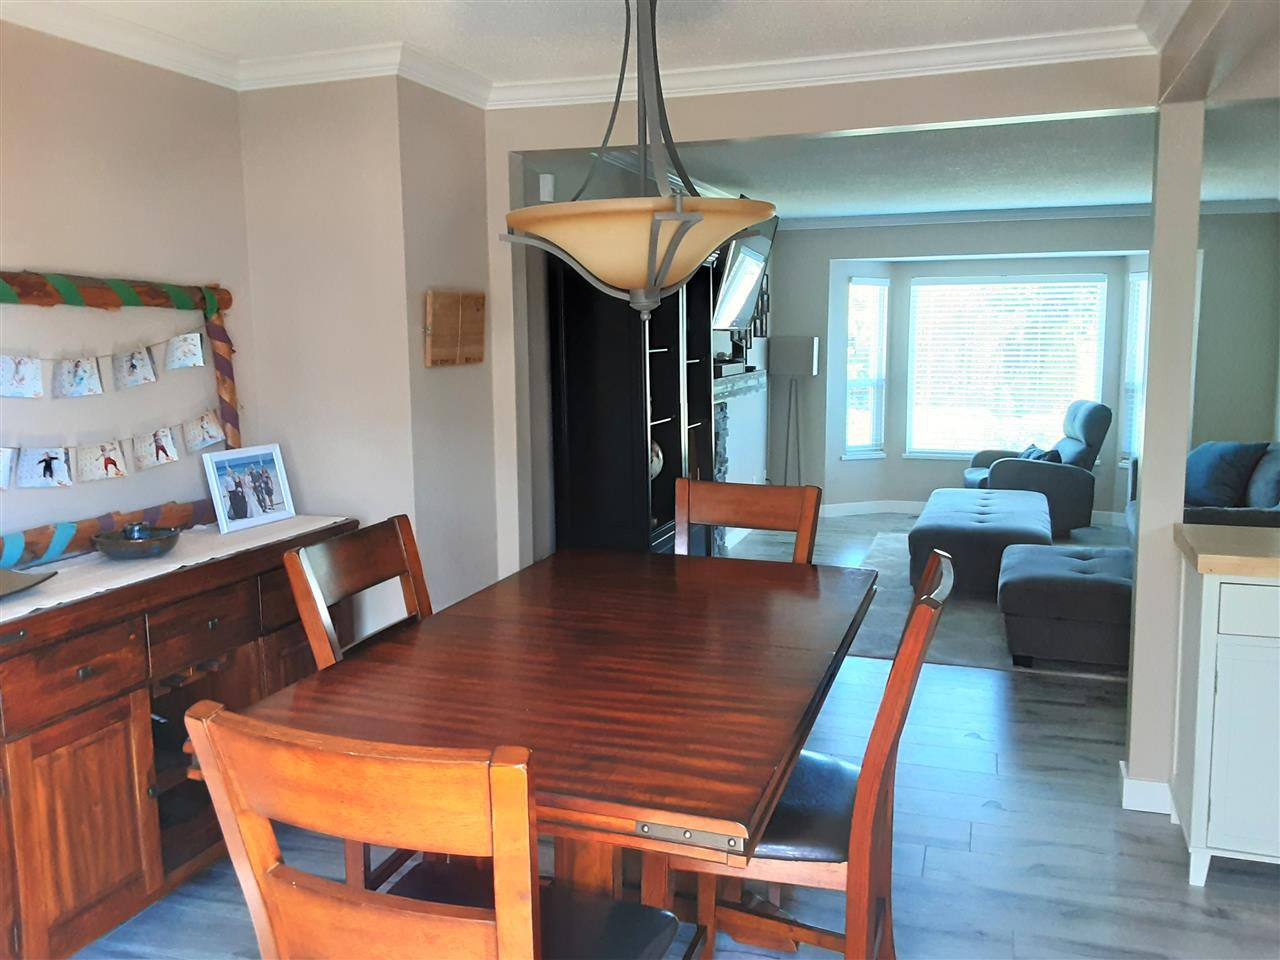 Photo 16: Photos: 3287 274 Street in Langley: Aldergrove Langley House for sale : MLS®# R2484329